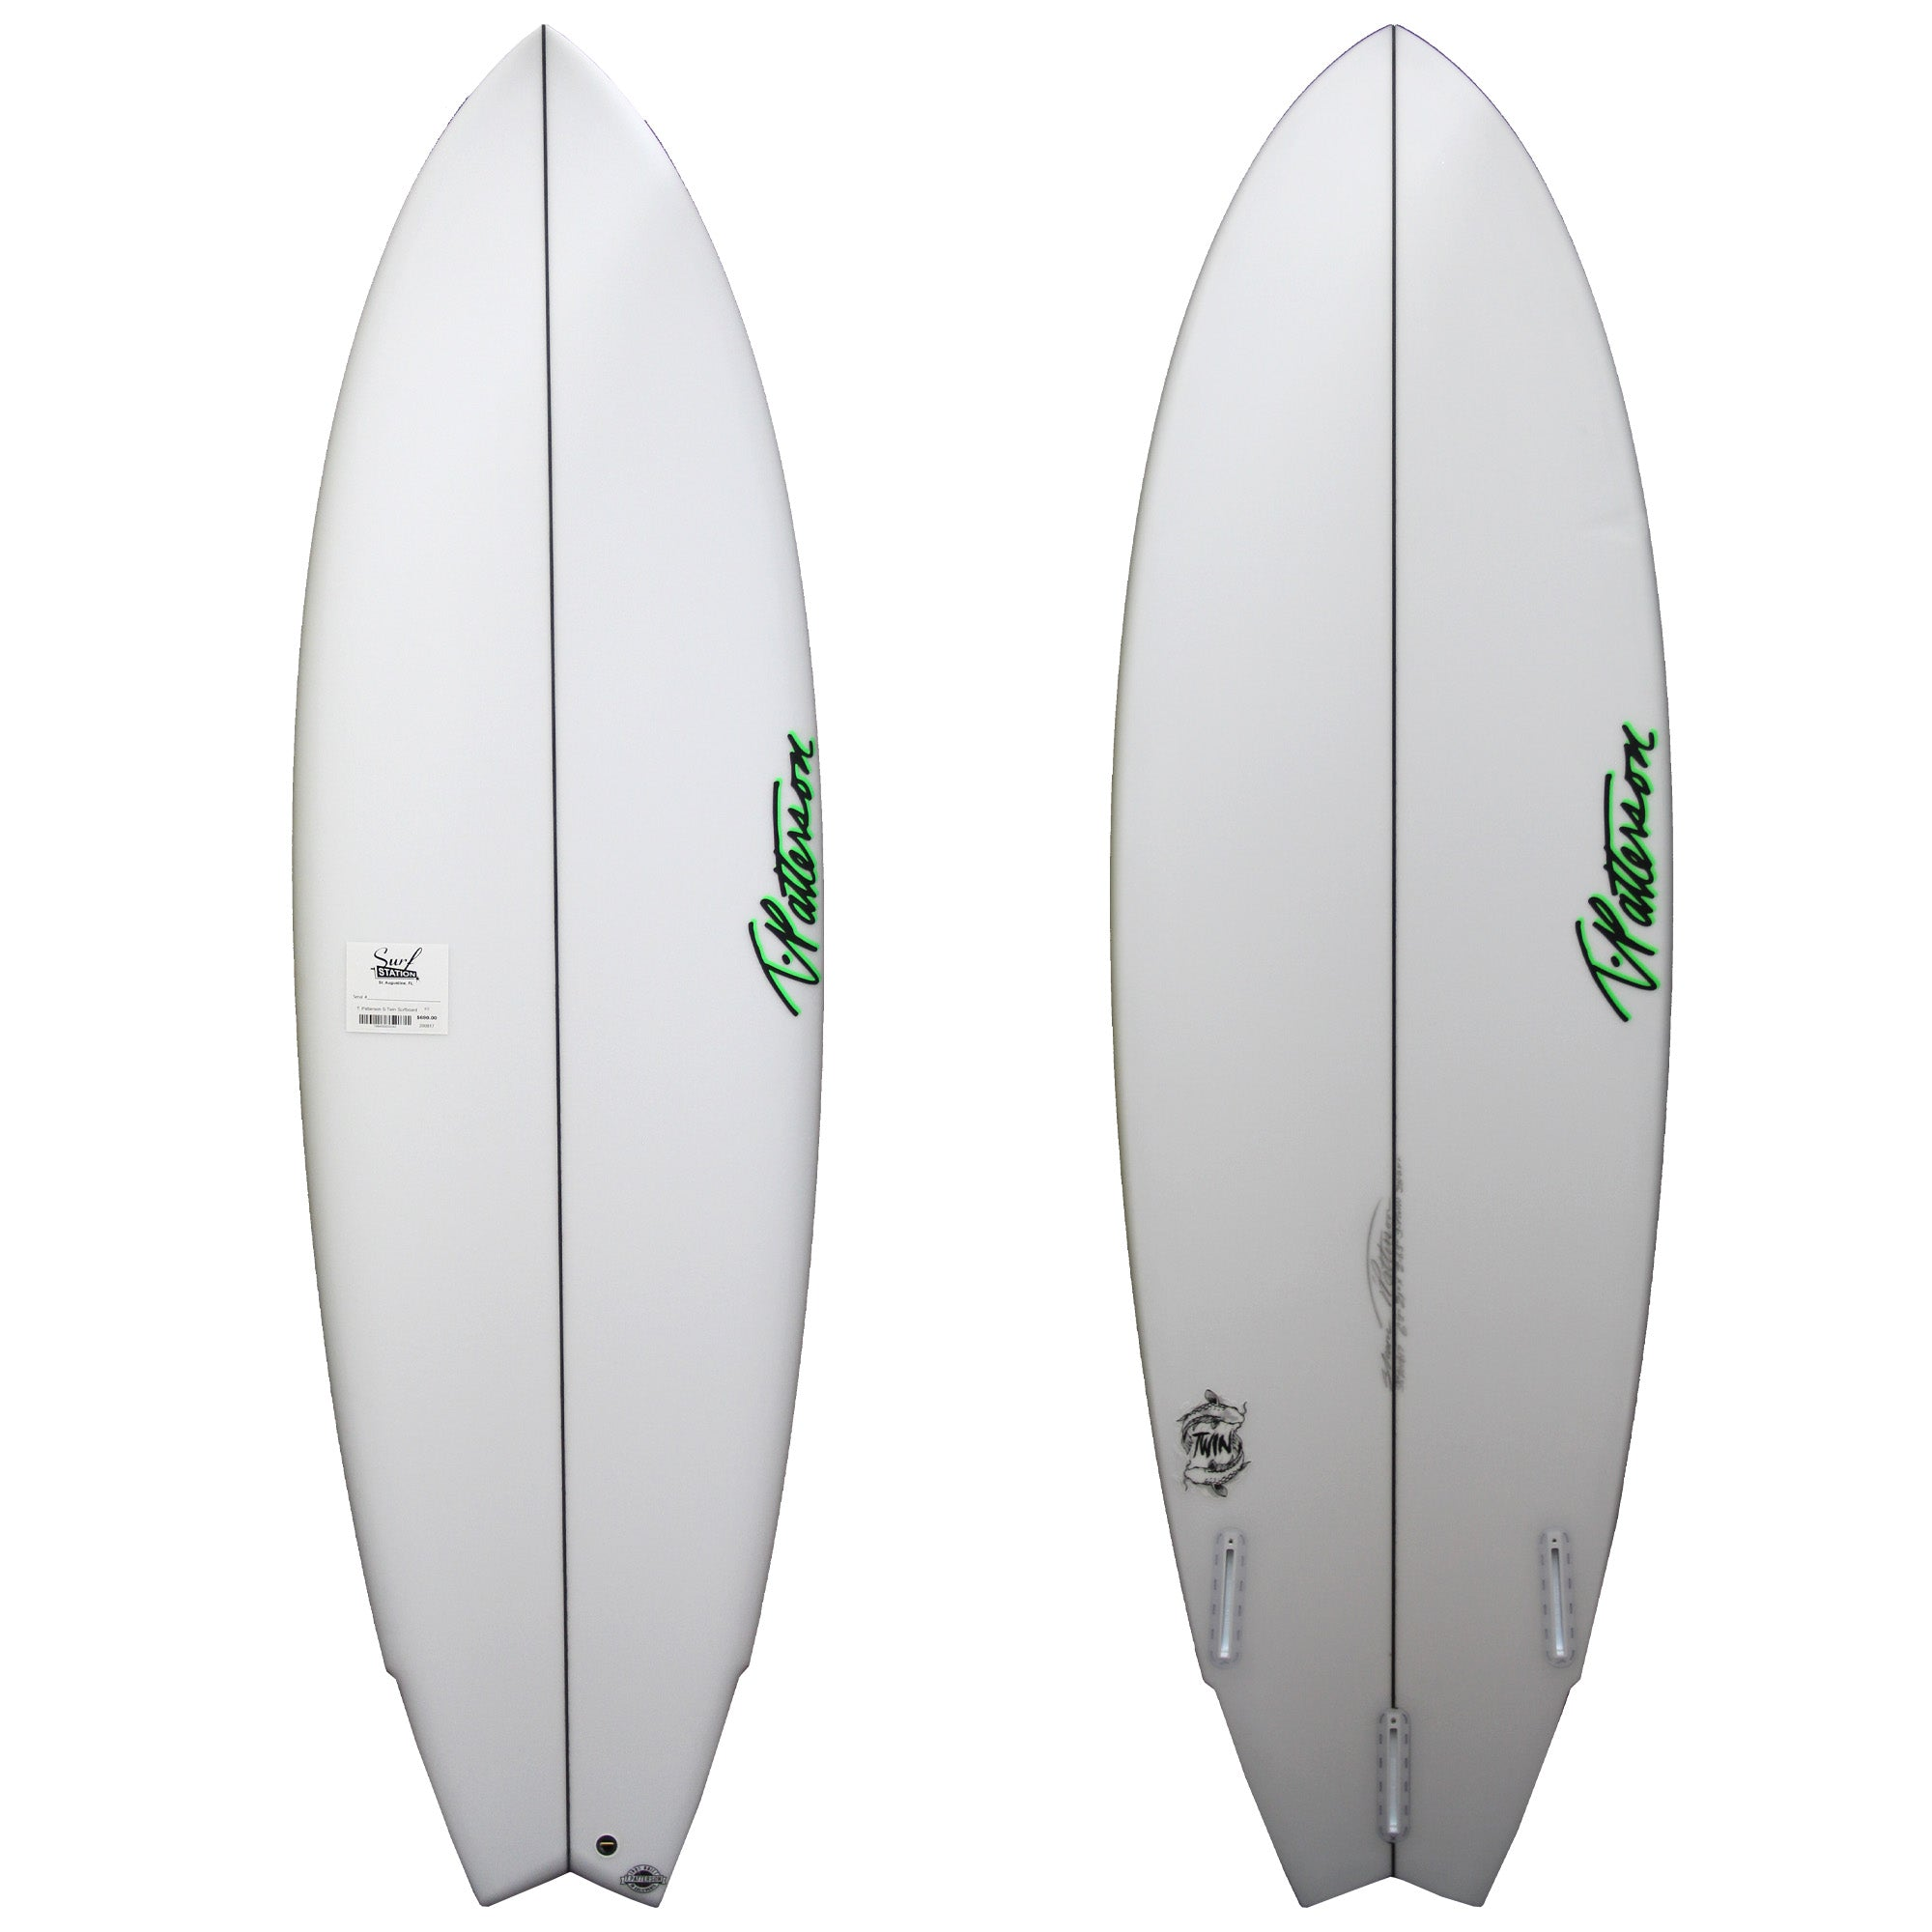 T. Patterson S-Twin Discount Surfboard